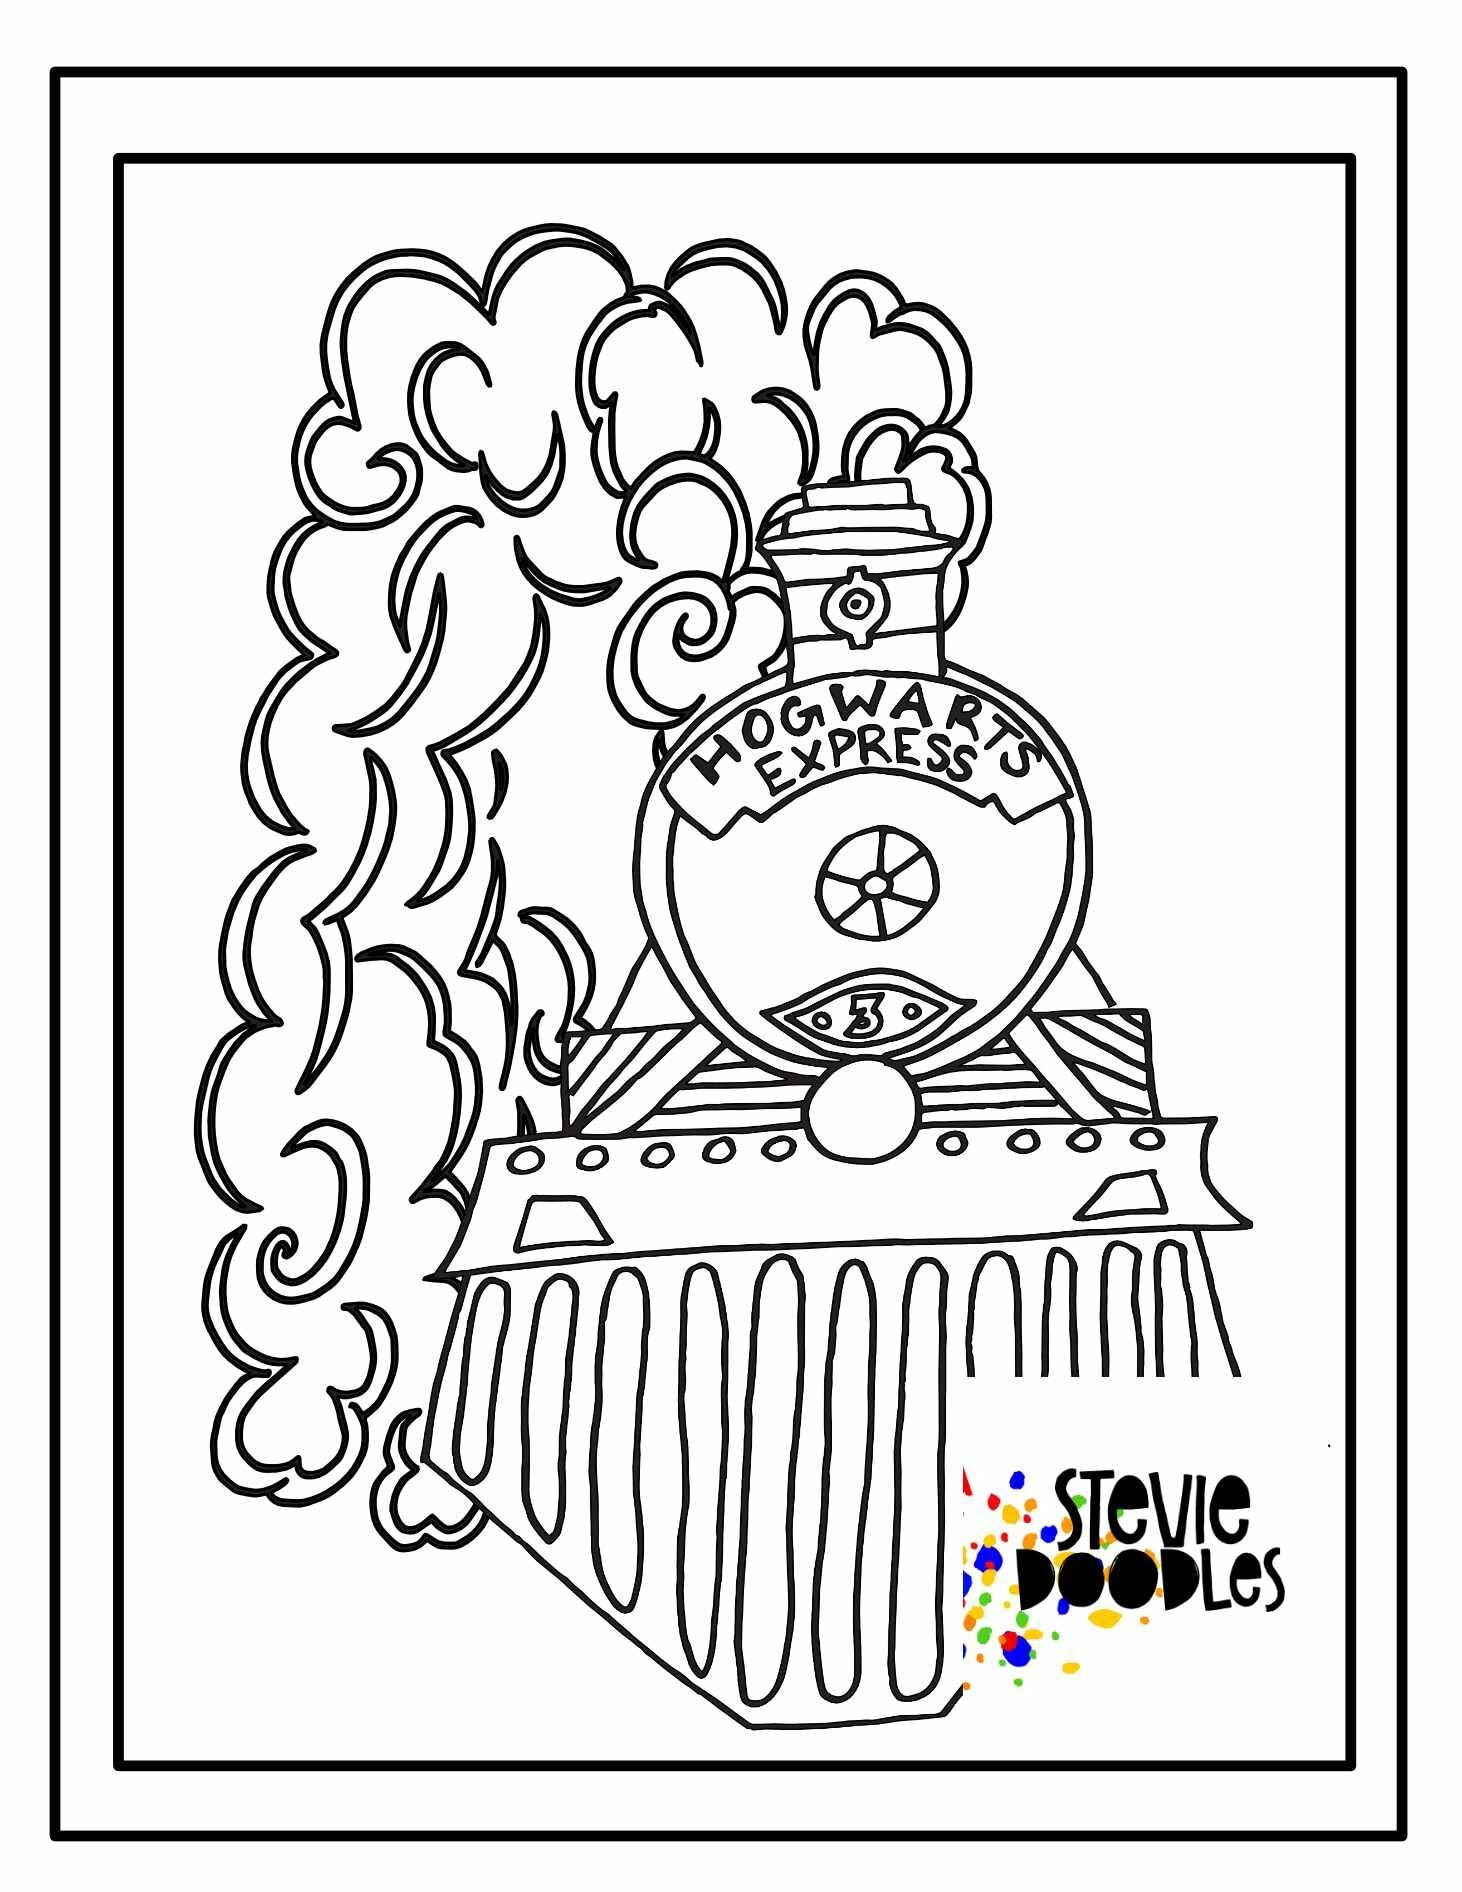 Hogwarts Express Free Coloring Pages Stevie Doodles Free Coloring Pages Harry Potter Coloring Pages Coloring Pages